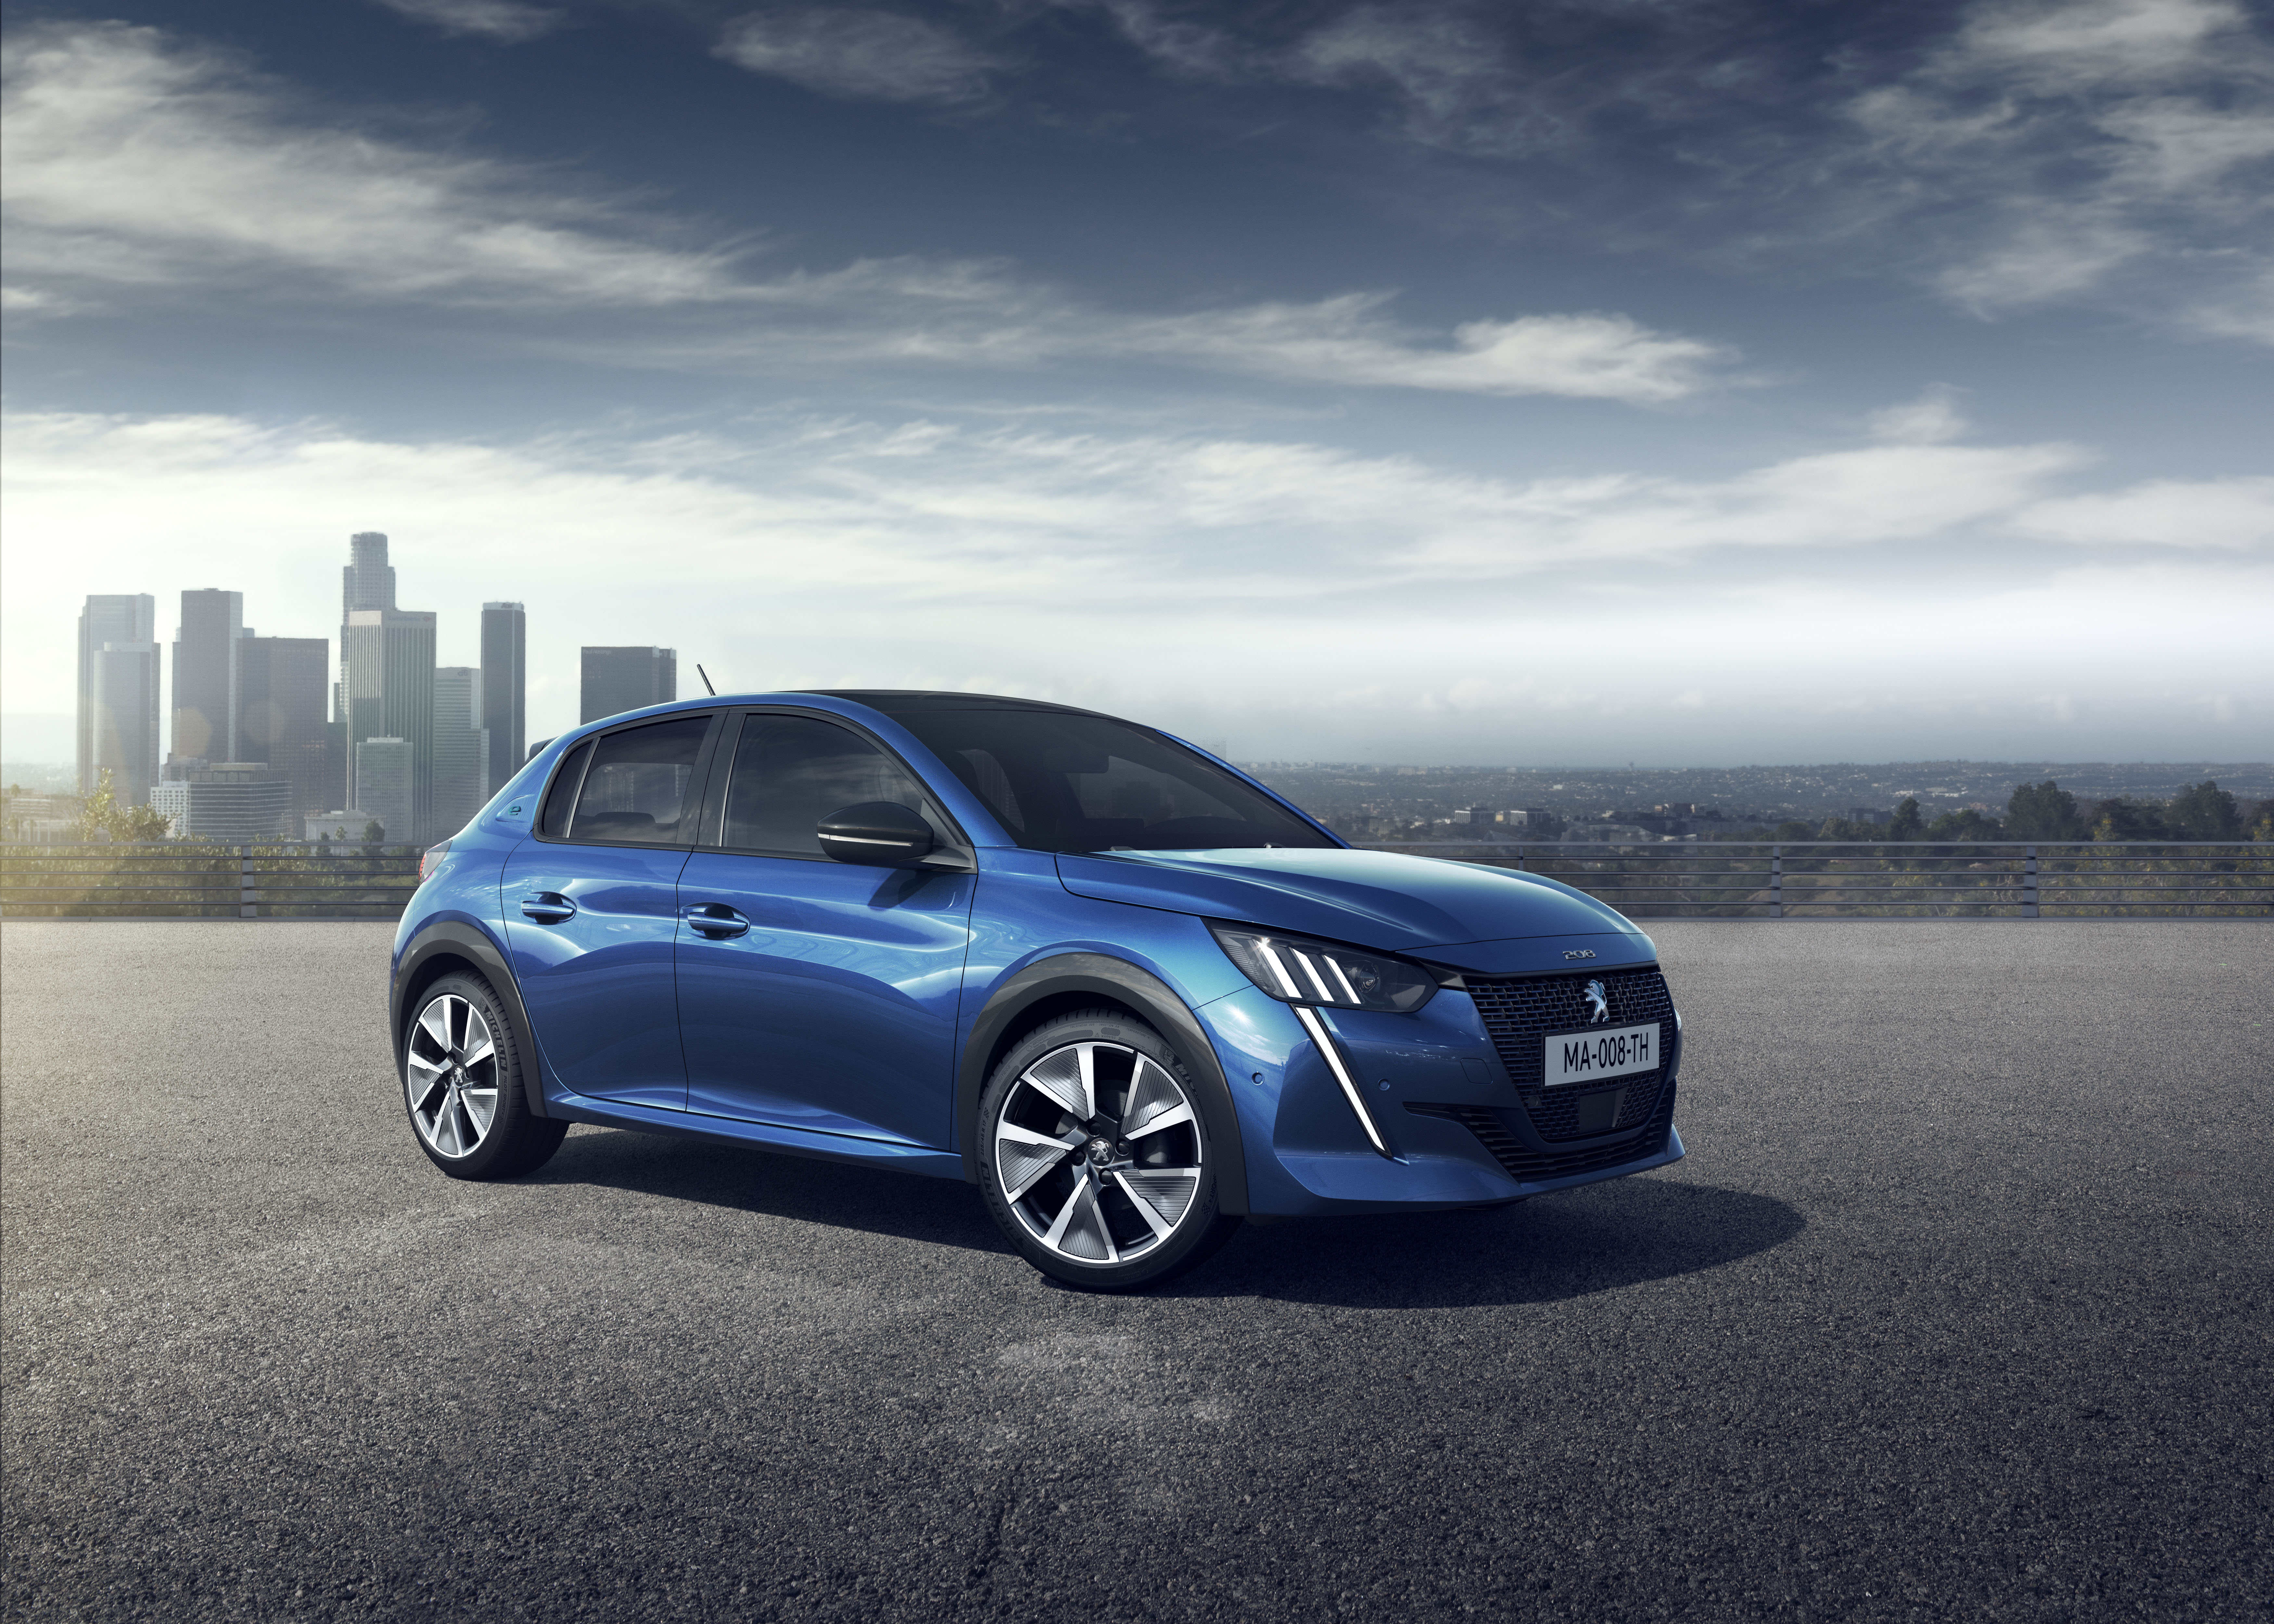 wallpaper of the day  2019 peugeot 208 pictures  photos  wallpapers